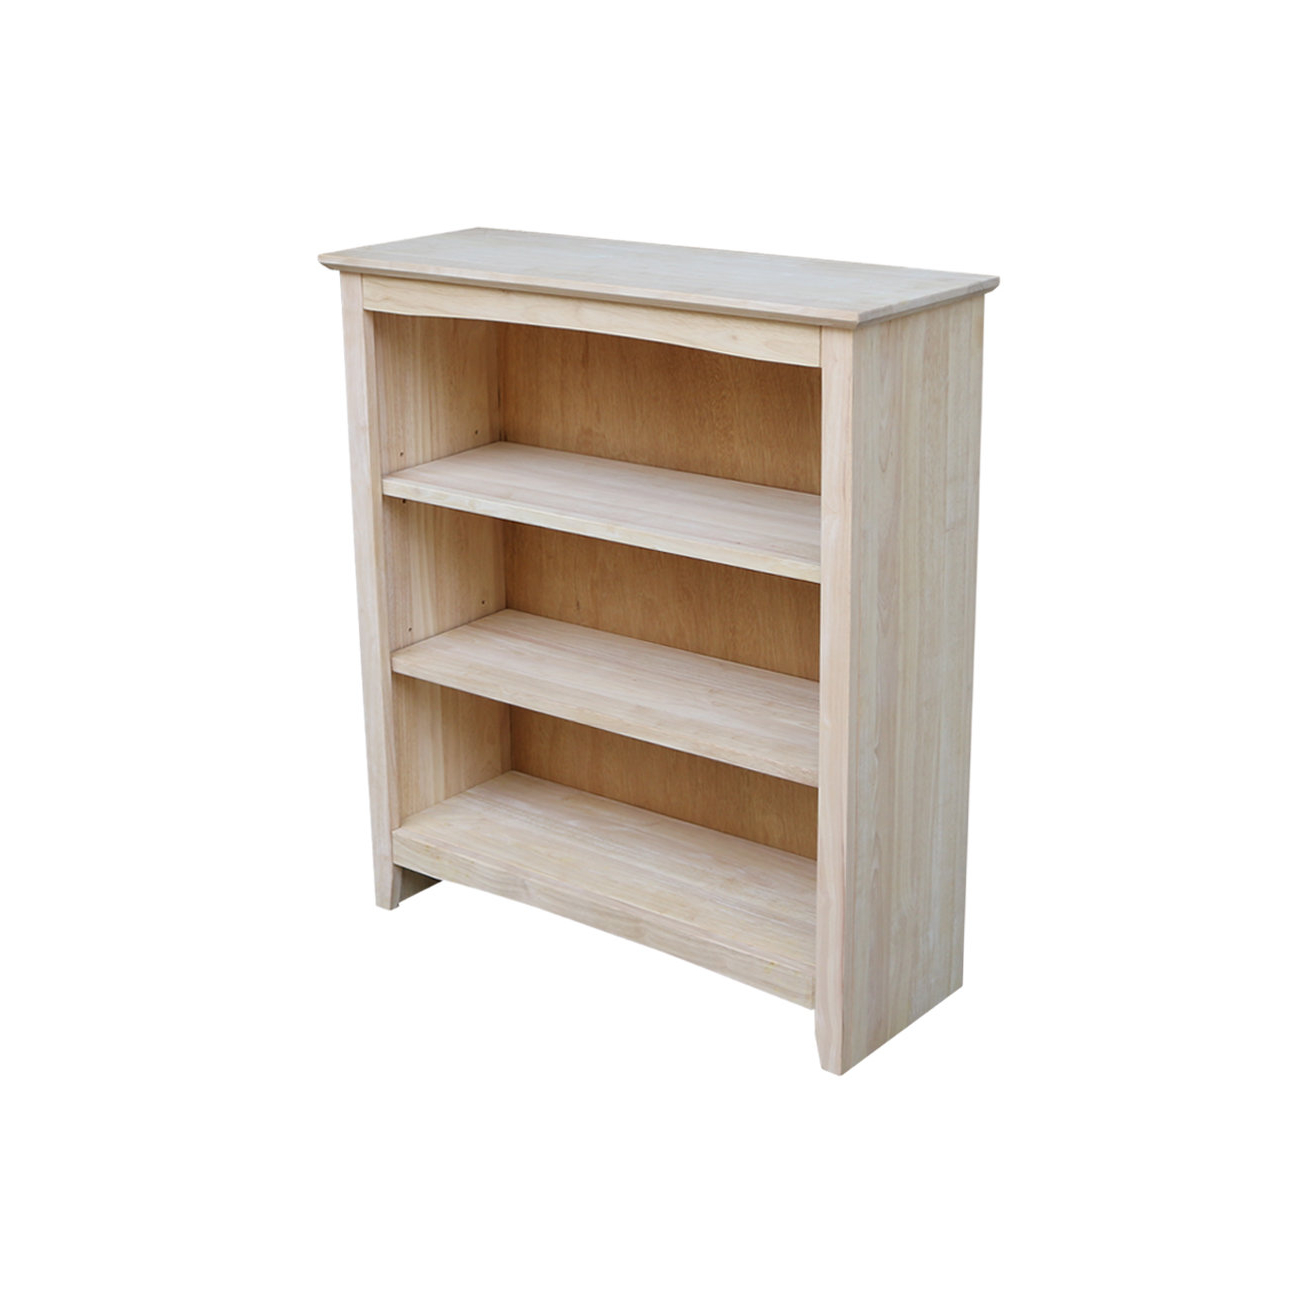 Widely Used Sandstrom Standard Bookcase For Keithley Standard Bookcases (View 18 of 20)